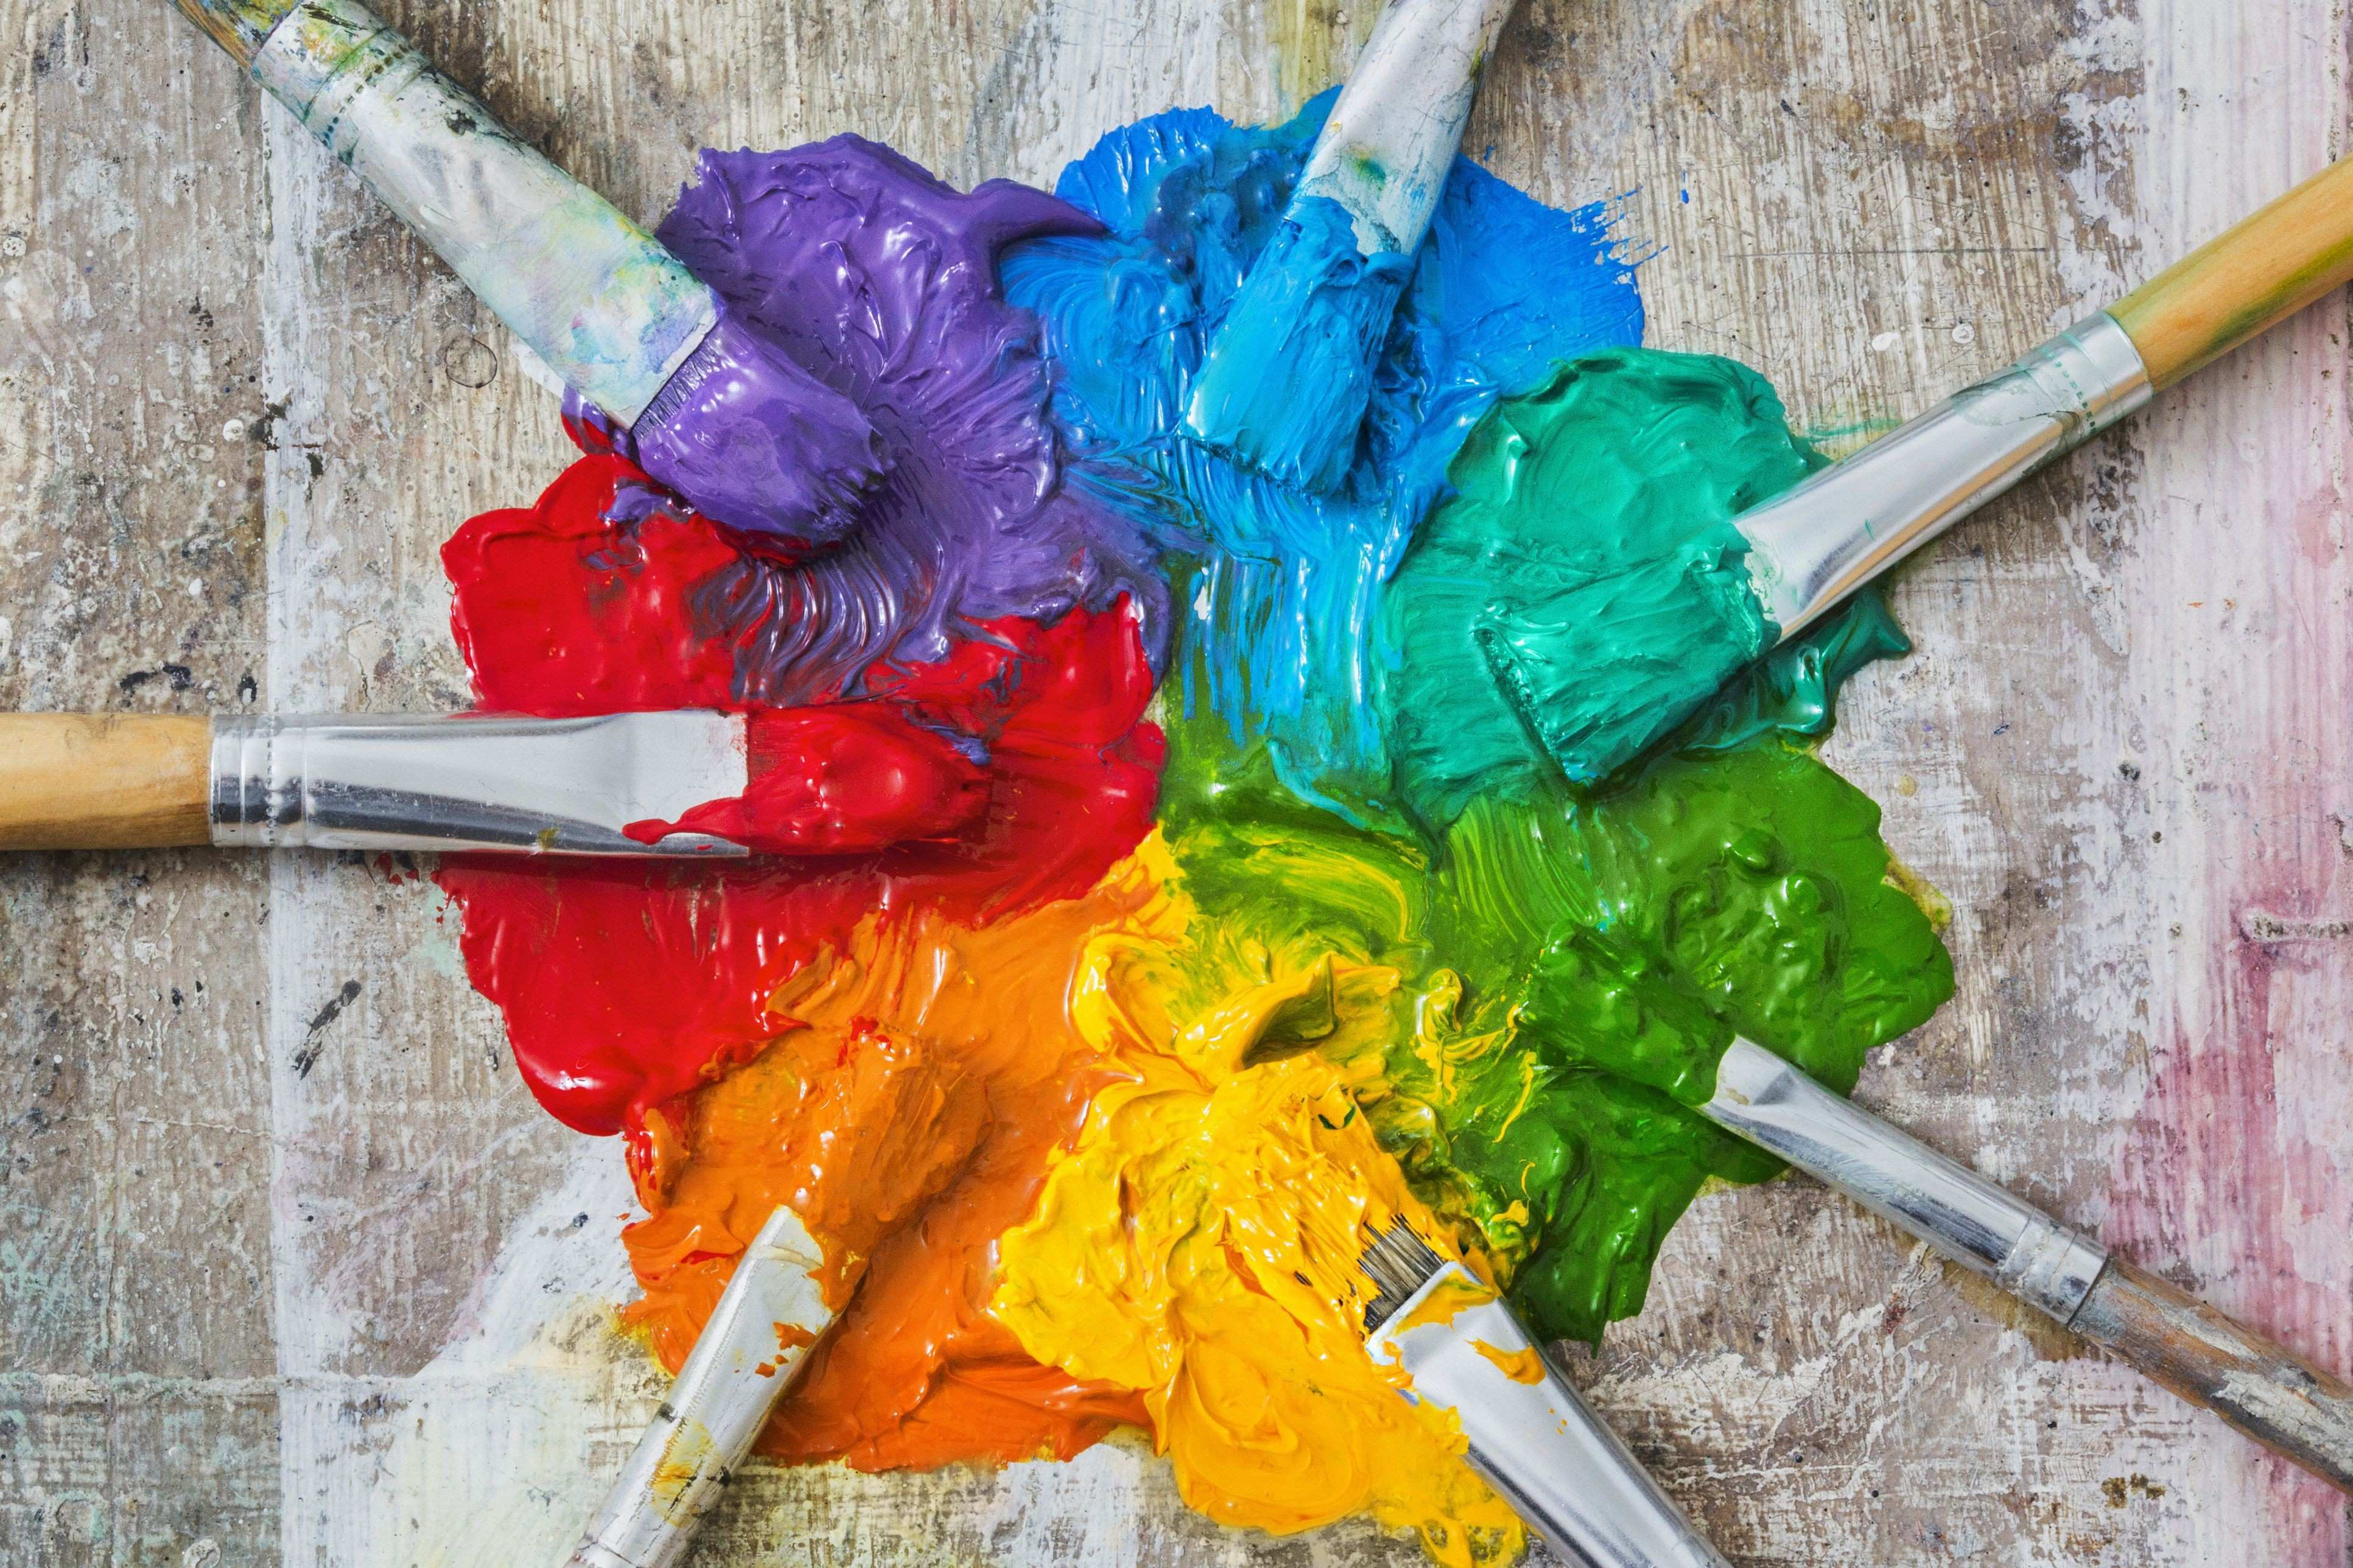 Oil Painting Supplies List